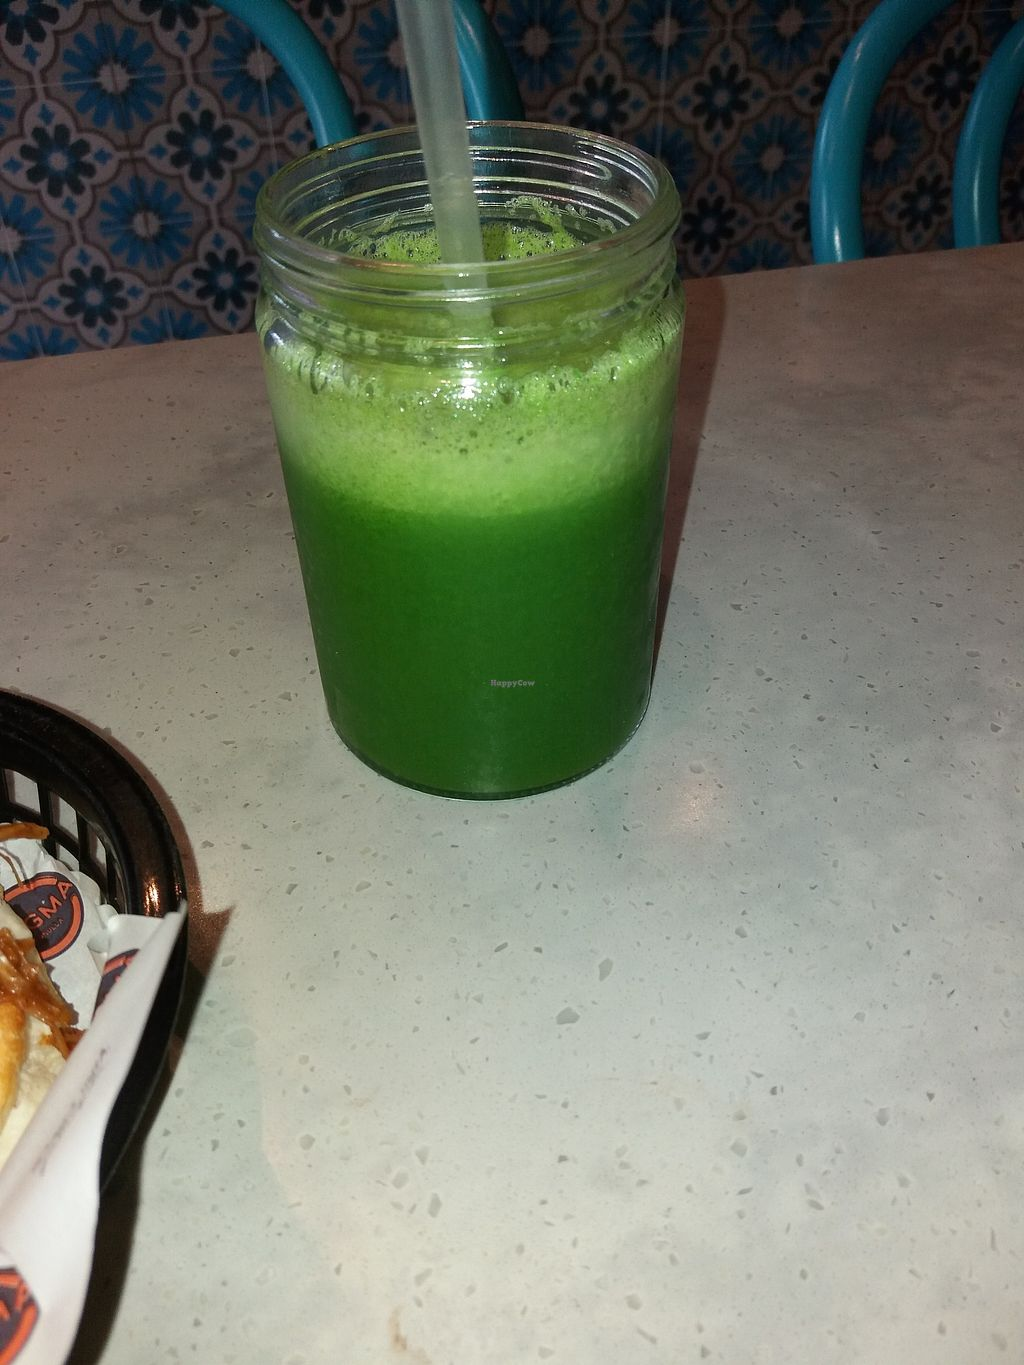 """Photo of Dogma Cronulla  by <a href=""""/members/profile/veganvirtues"""">veganvirtues</a> <br/>Apple, kale and ginger juice <br/> February 19, 2018  - <a href='/contact/abuse/image/89226/361126'>Report</a>"""